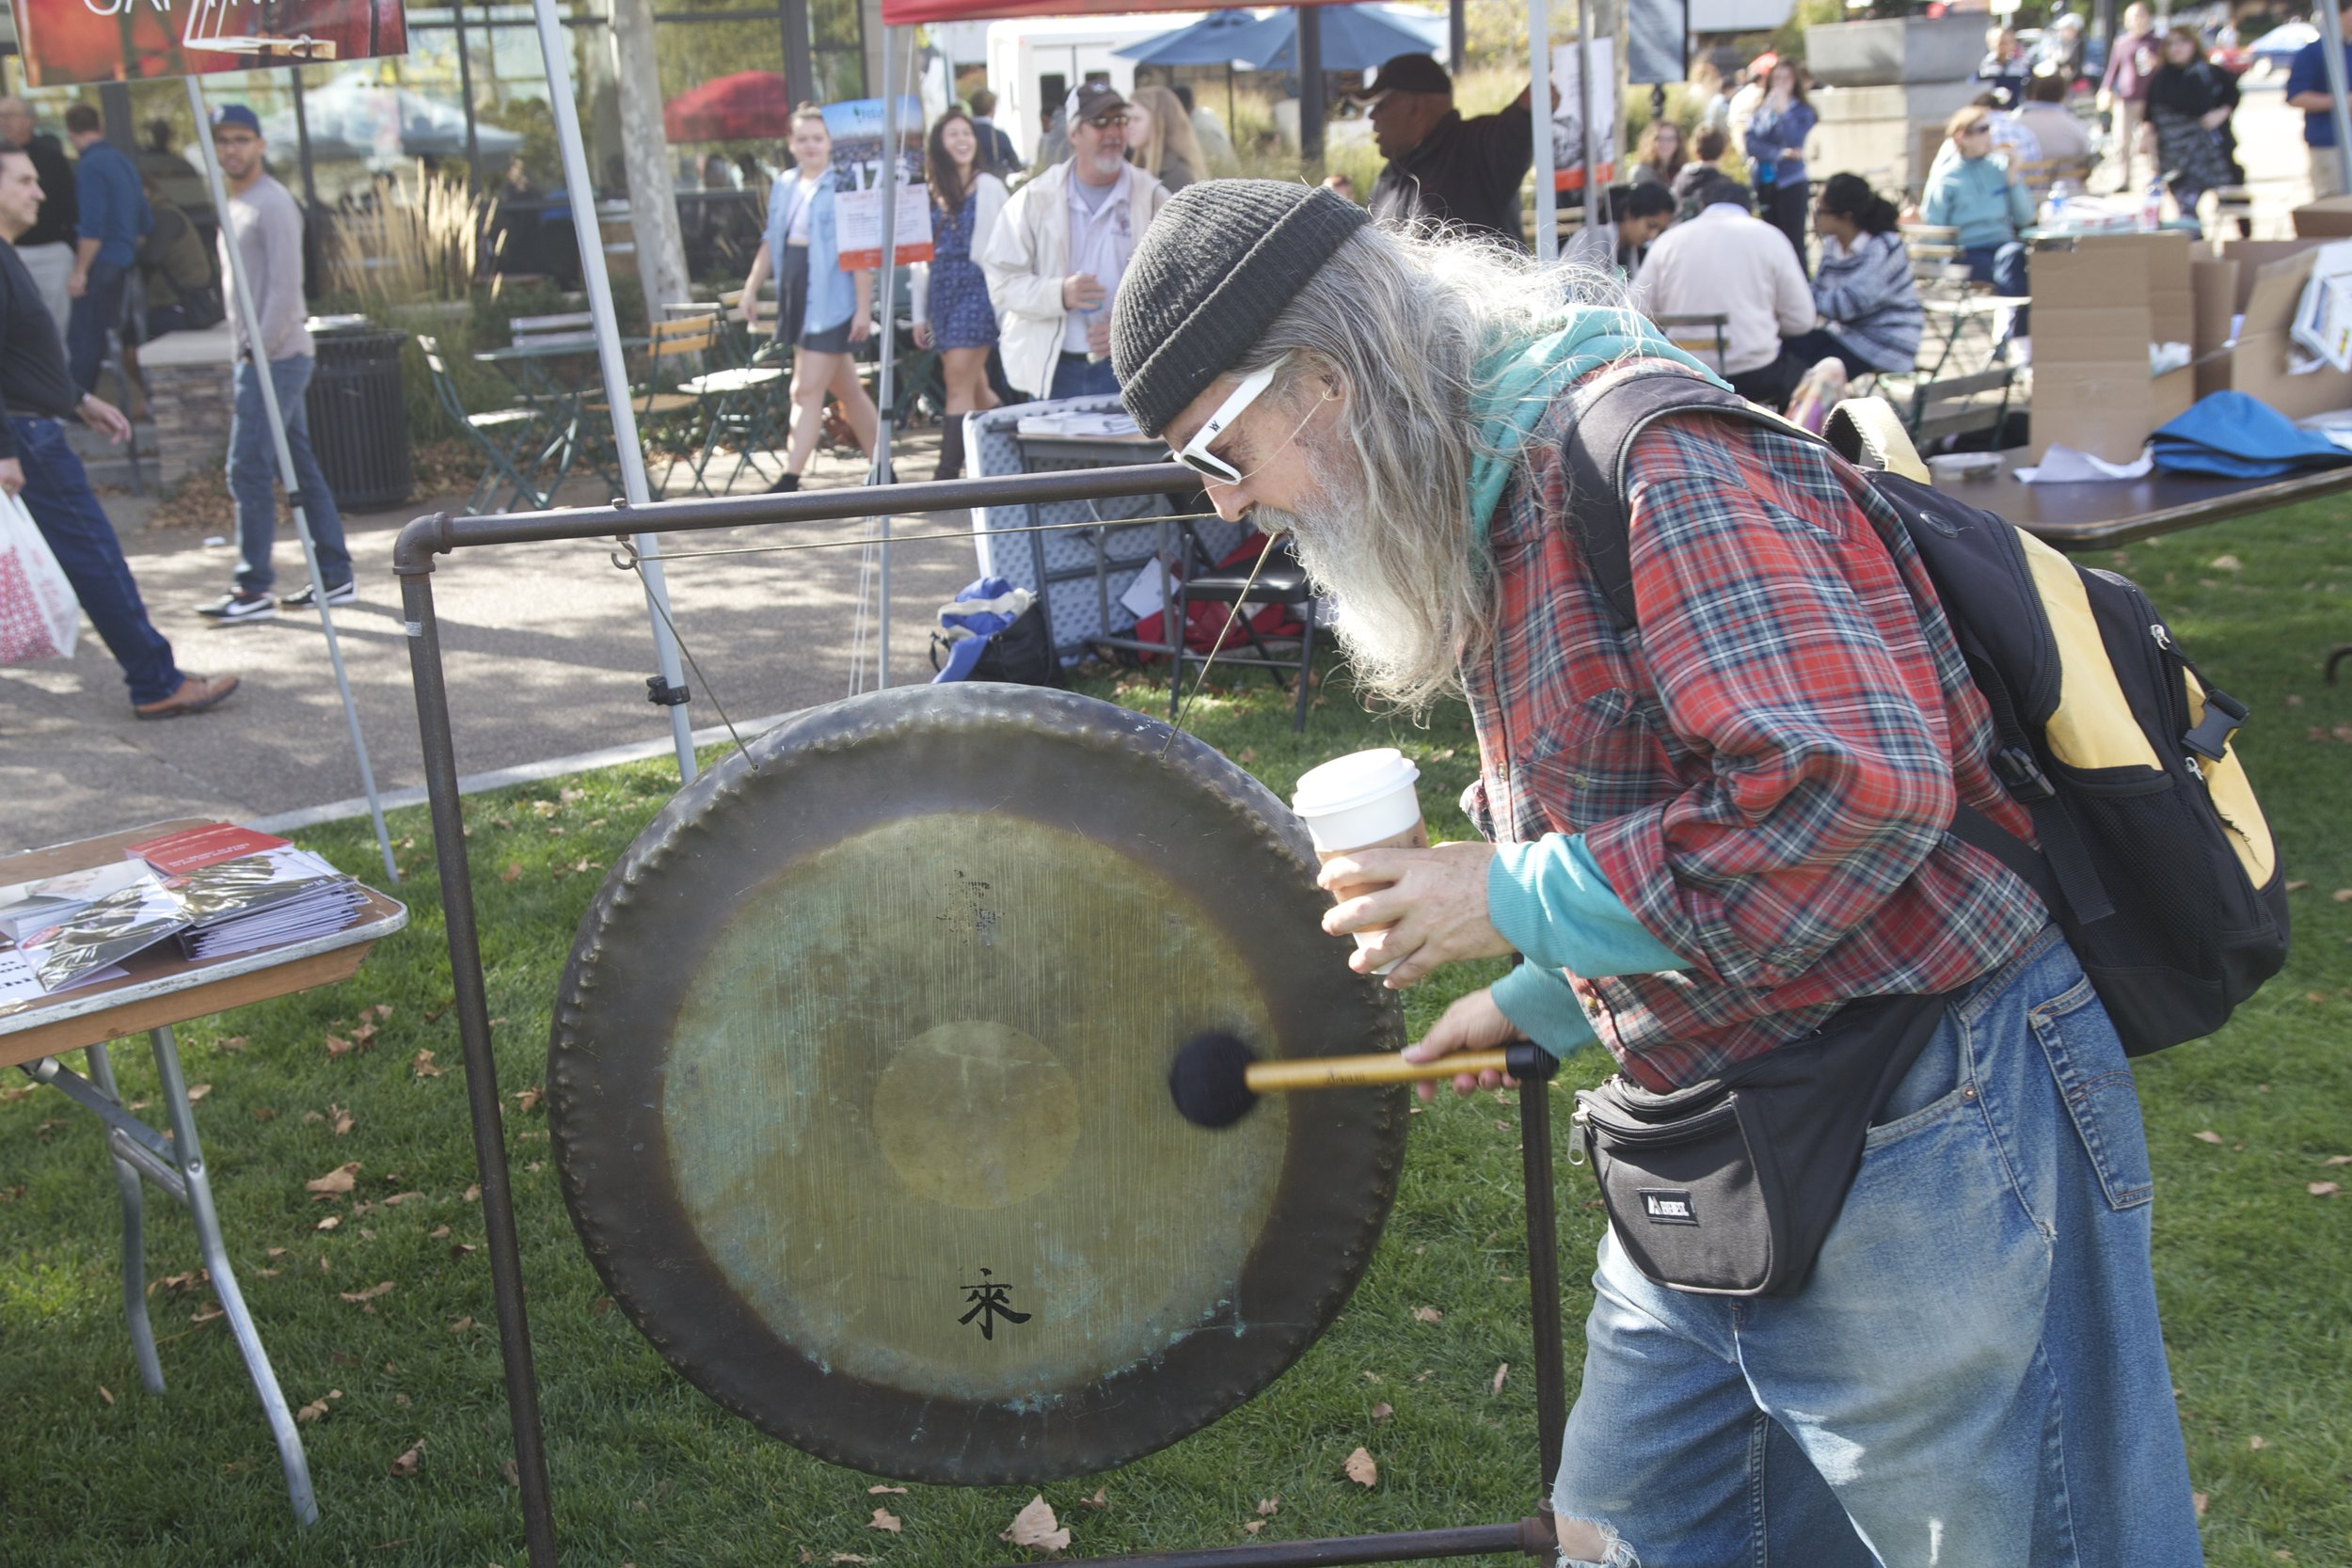 Trying out the gong in Pittsburgh's Schenley Plaza